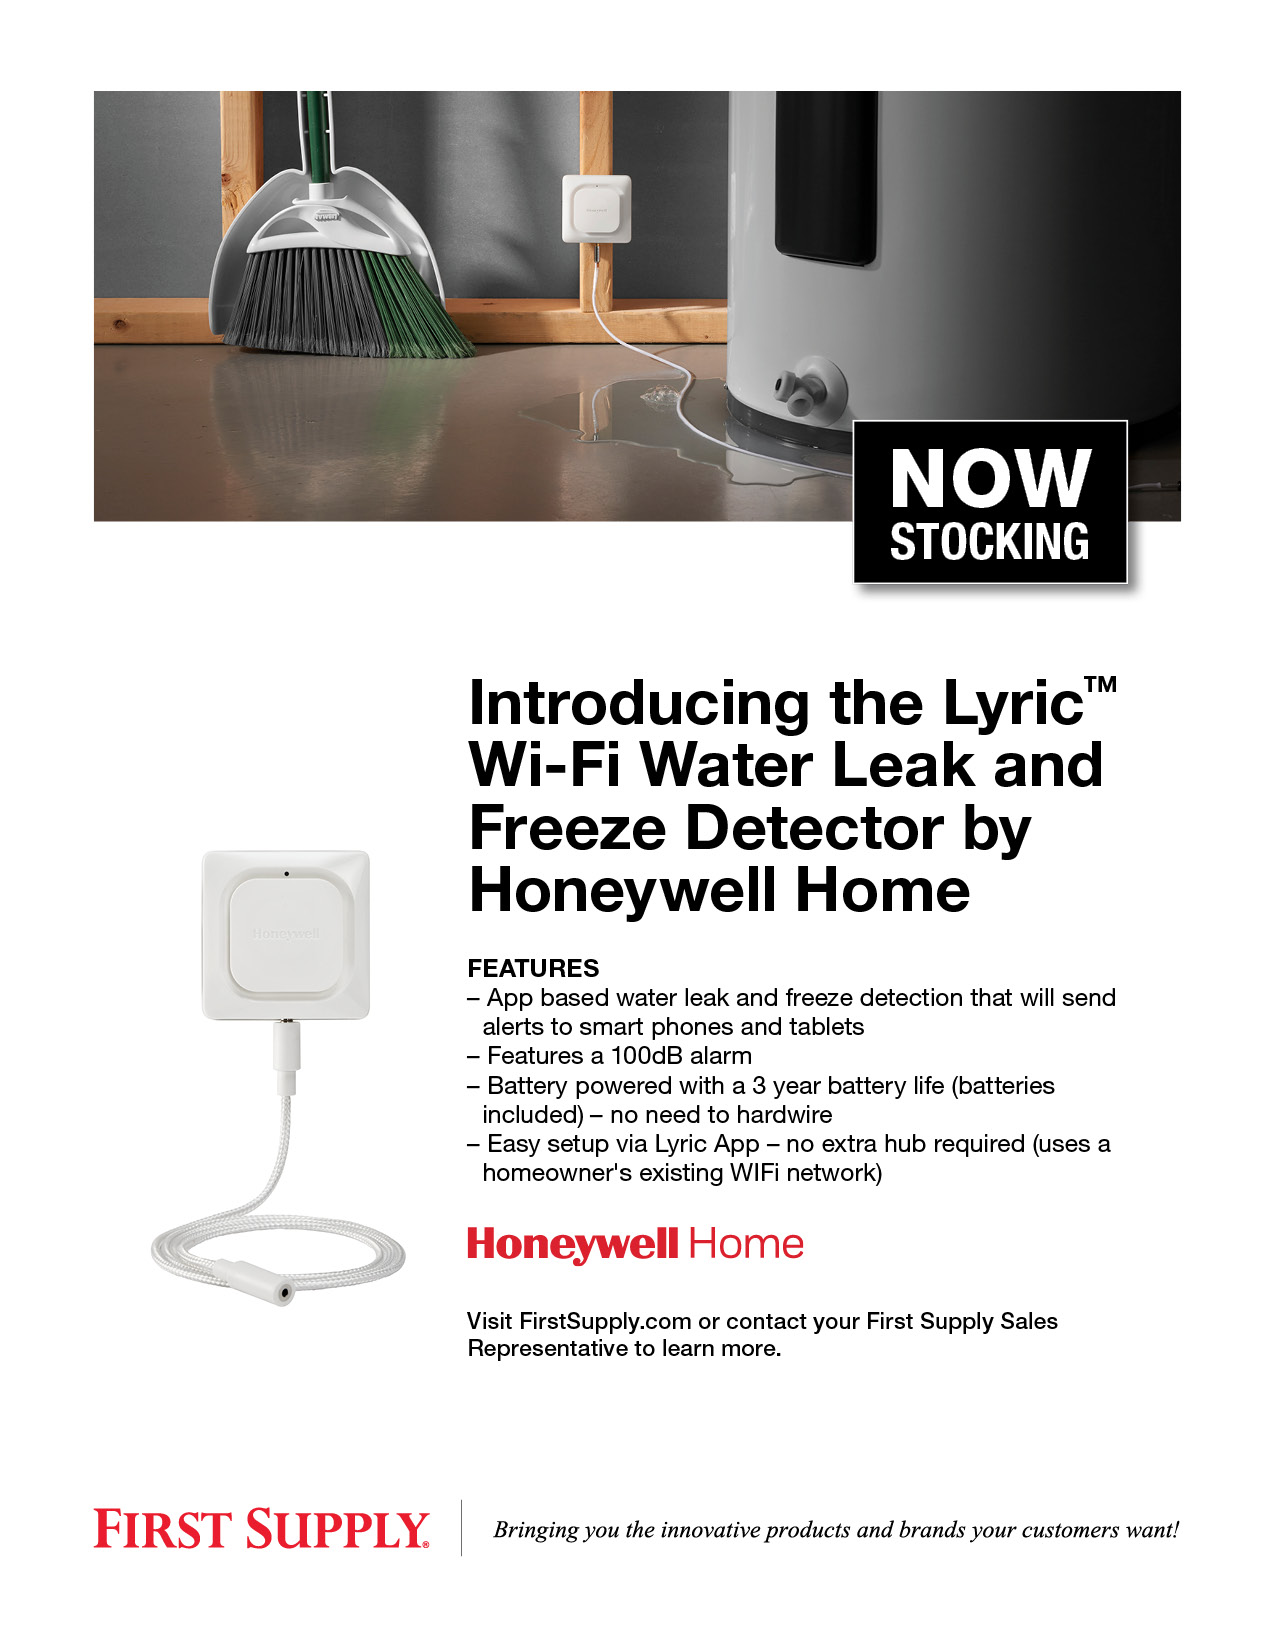 Introducing the Lyric Wi-Fi Water Leak and Freeze Detector by Honeywell Home